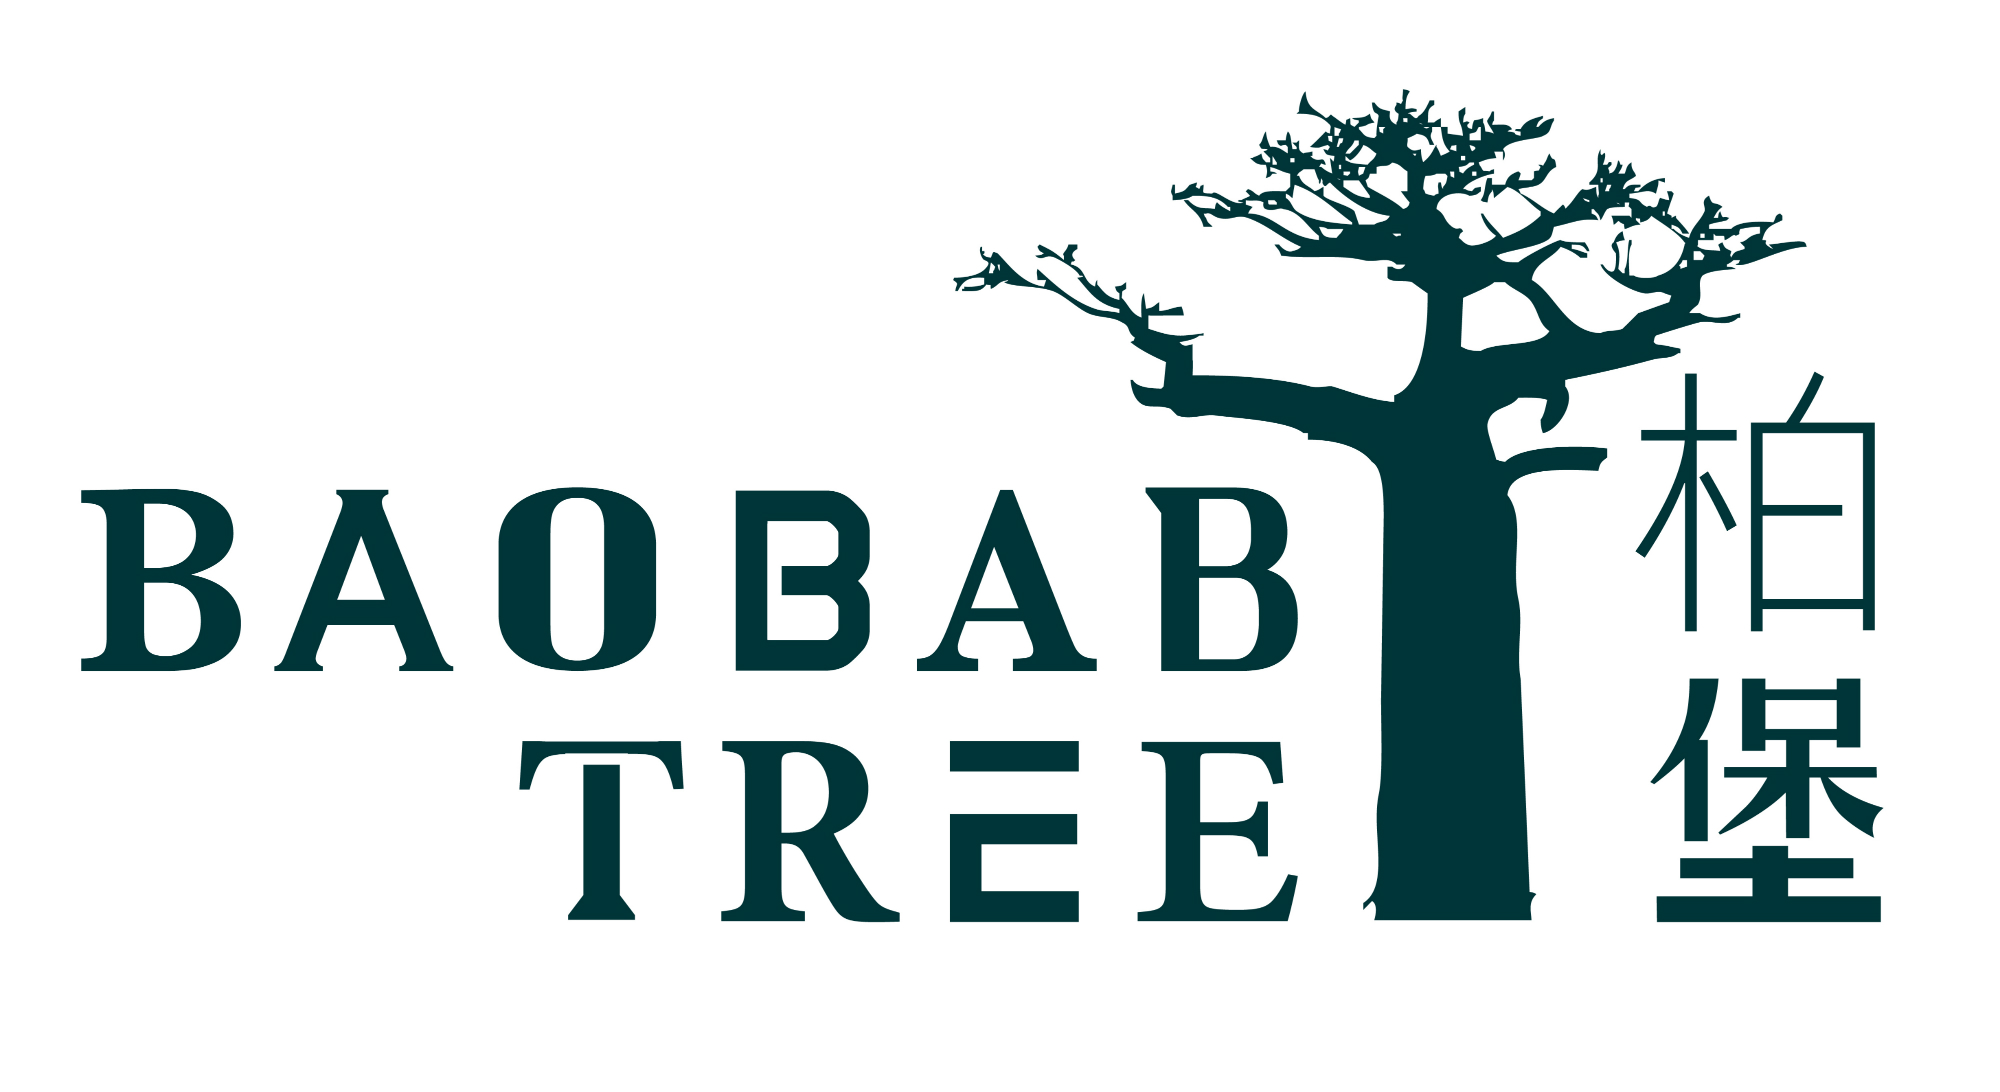 Baobab tree logo hires 20190507 website